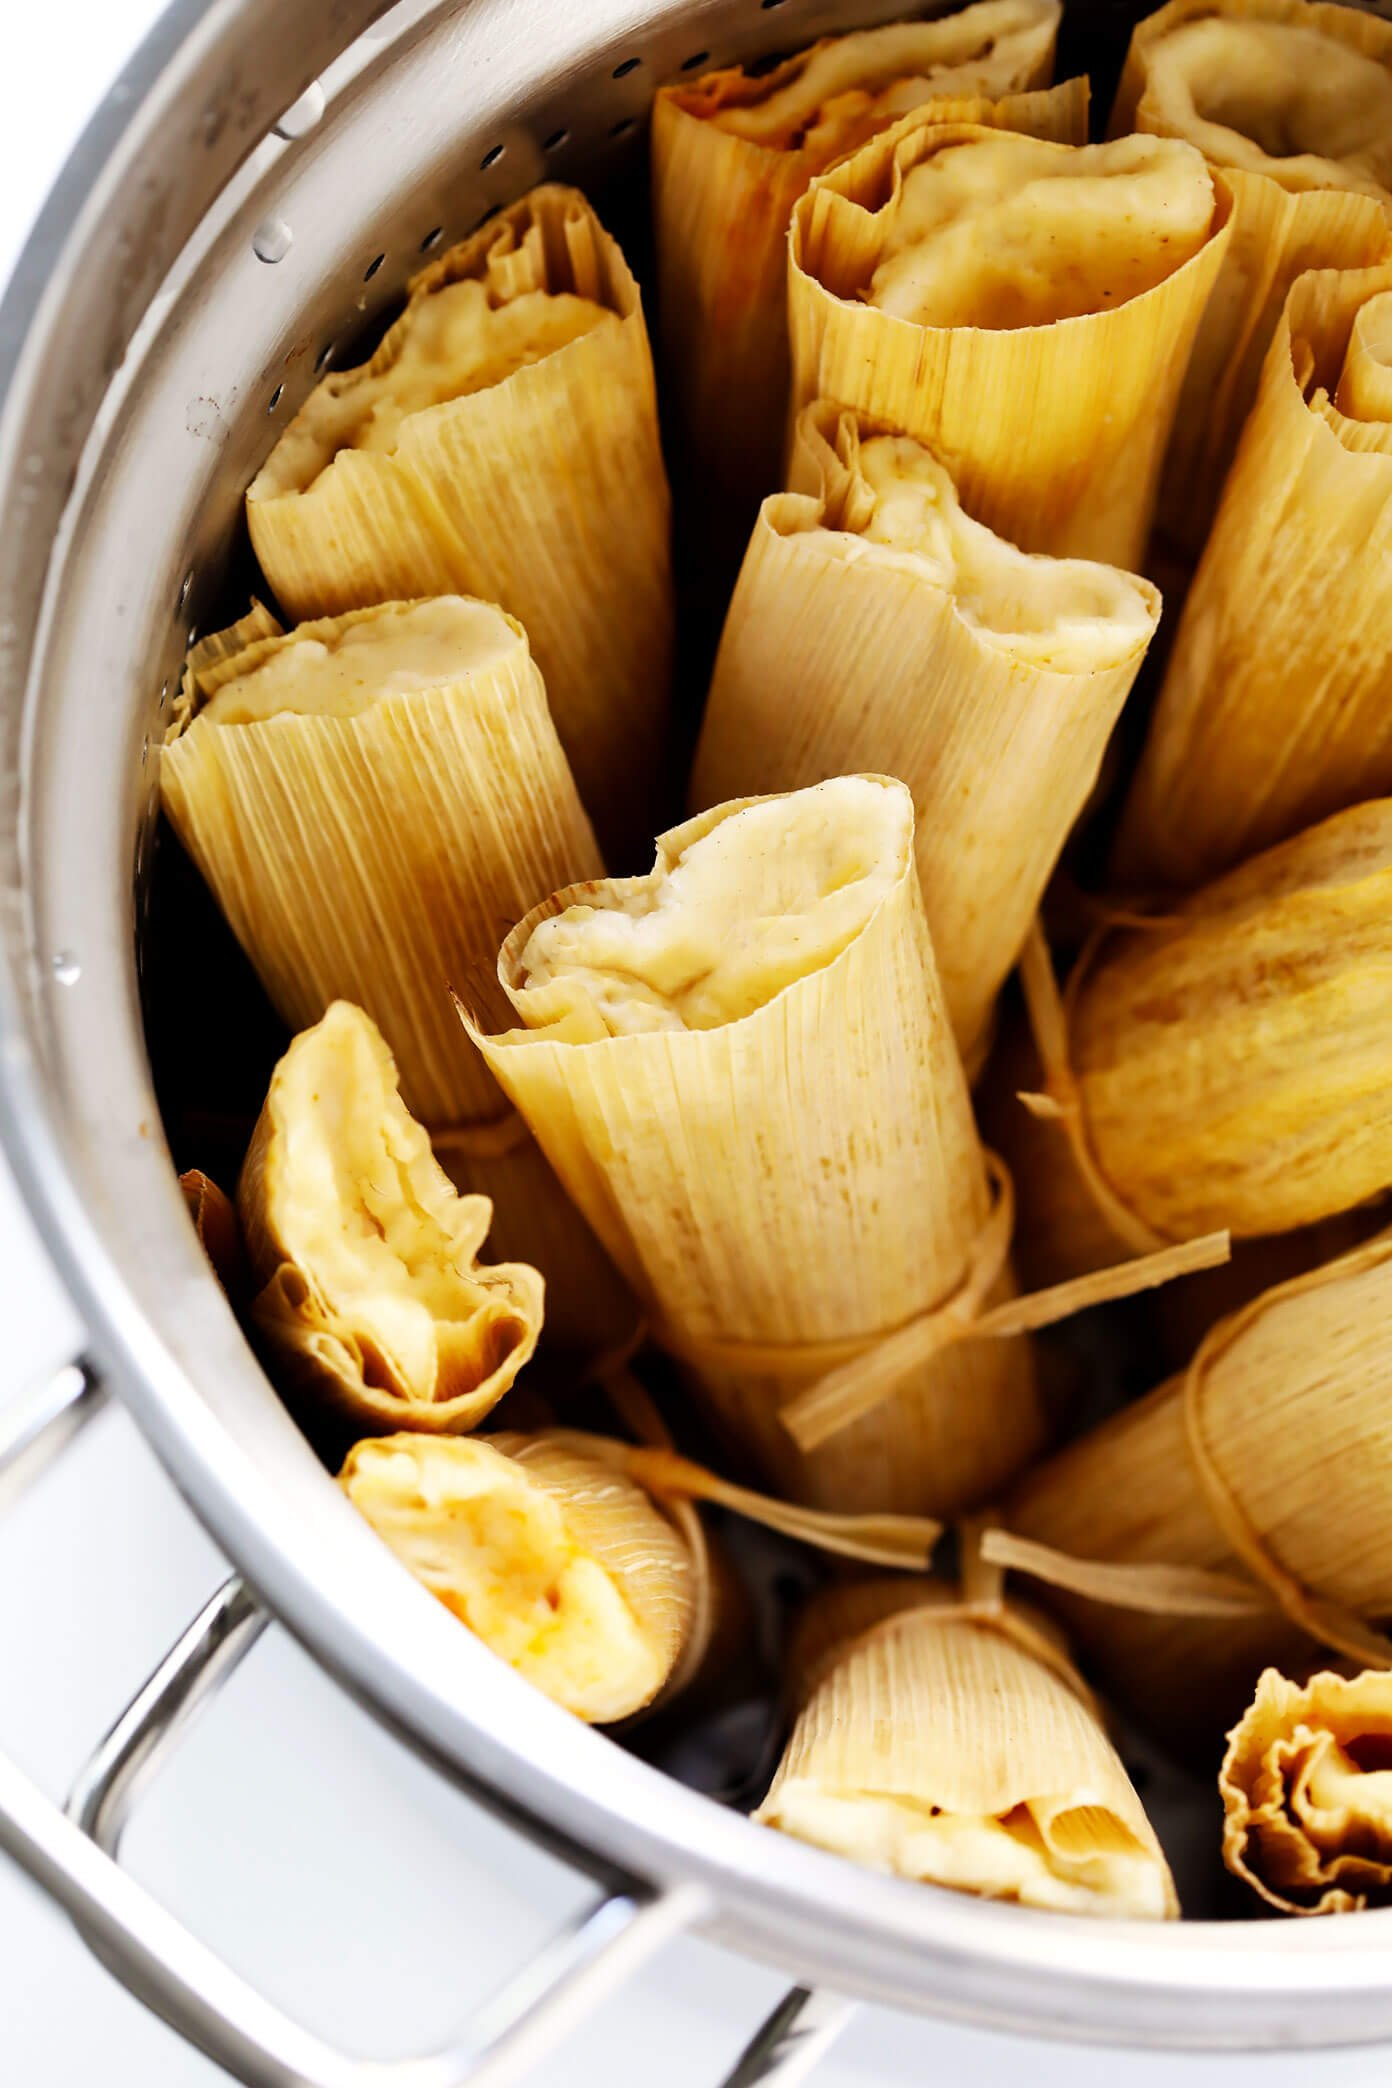 How to make tamales gimme some oven how to steam tamales a step by step tutorial forumfinder Image collections